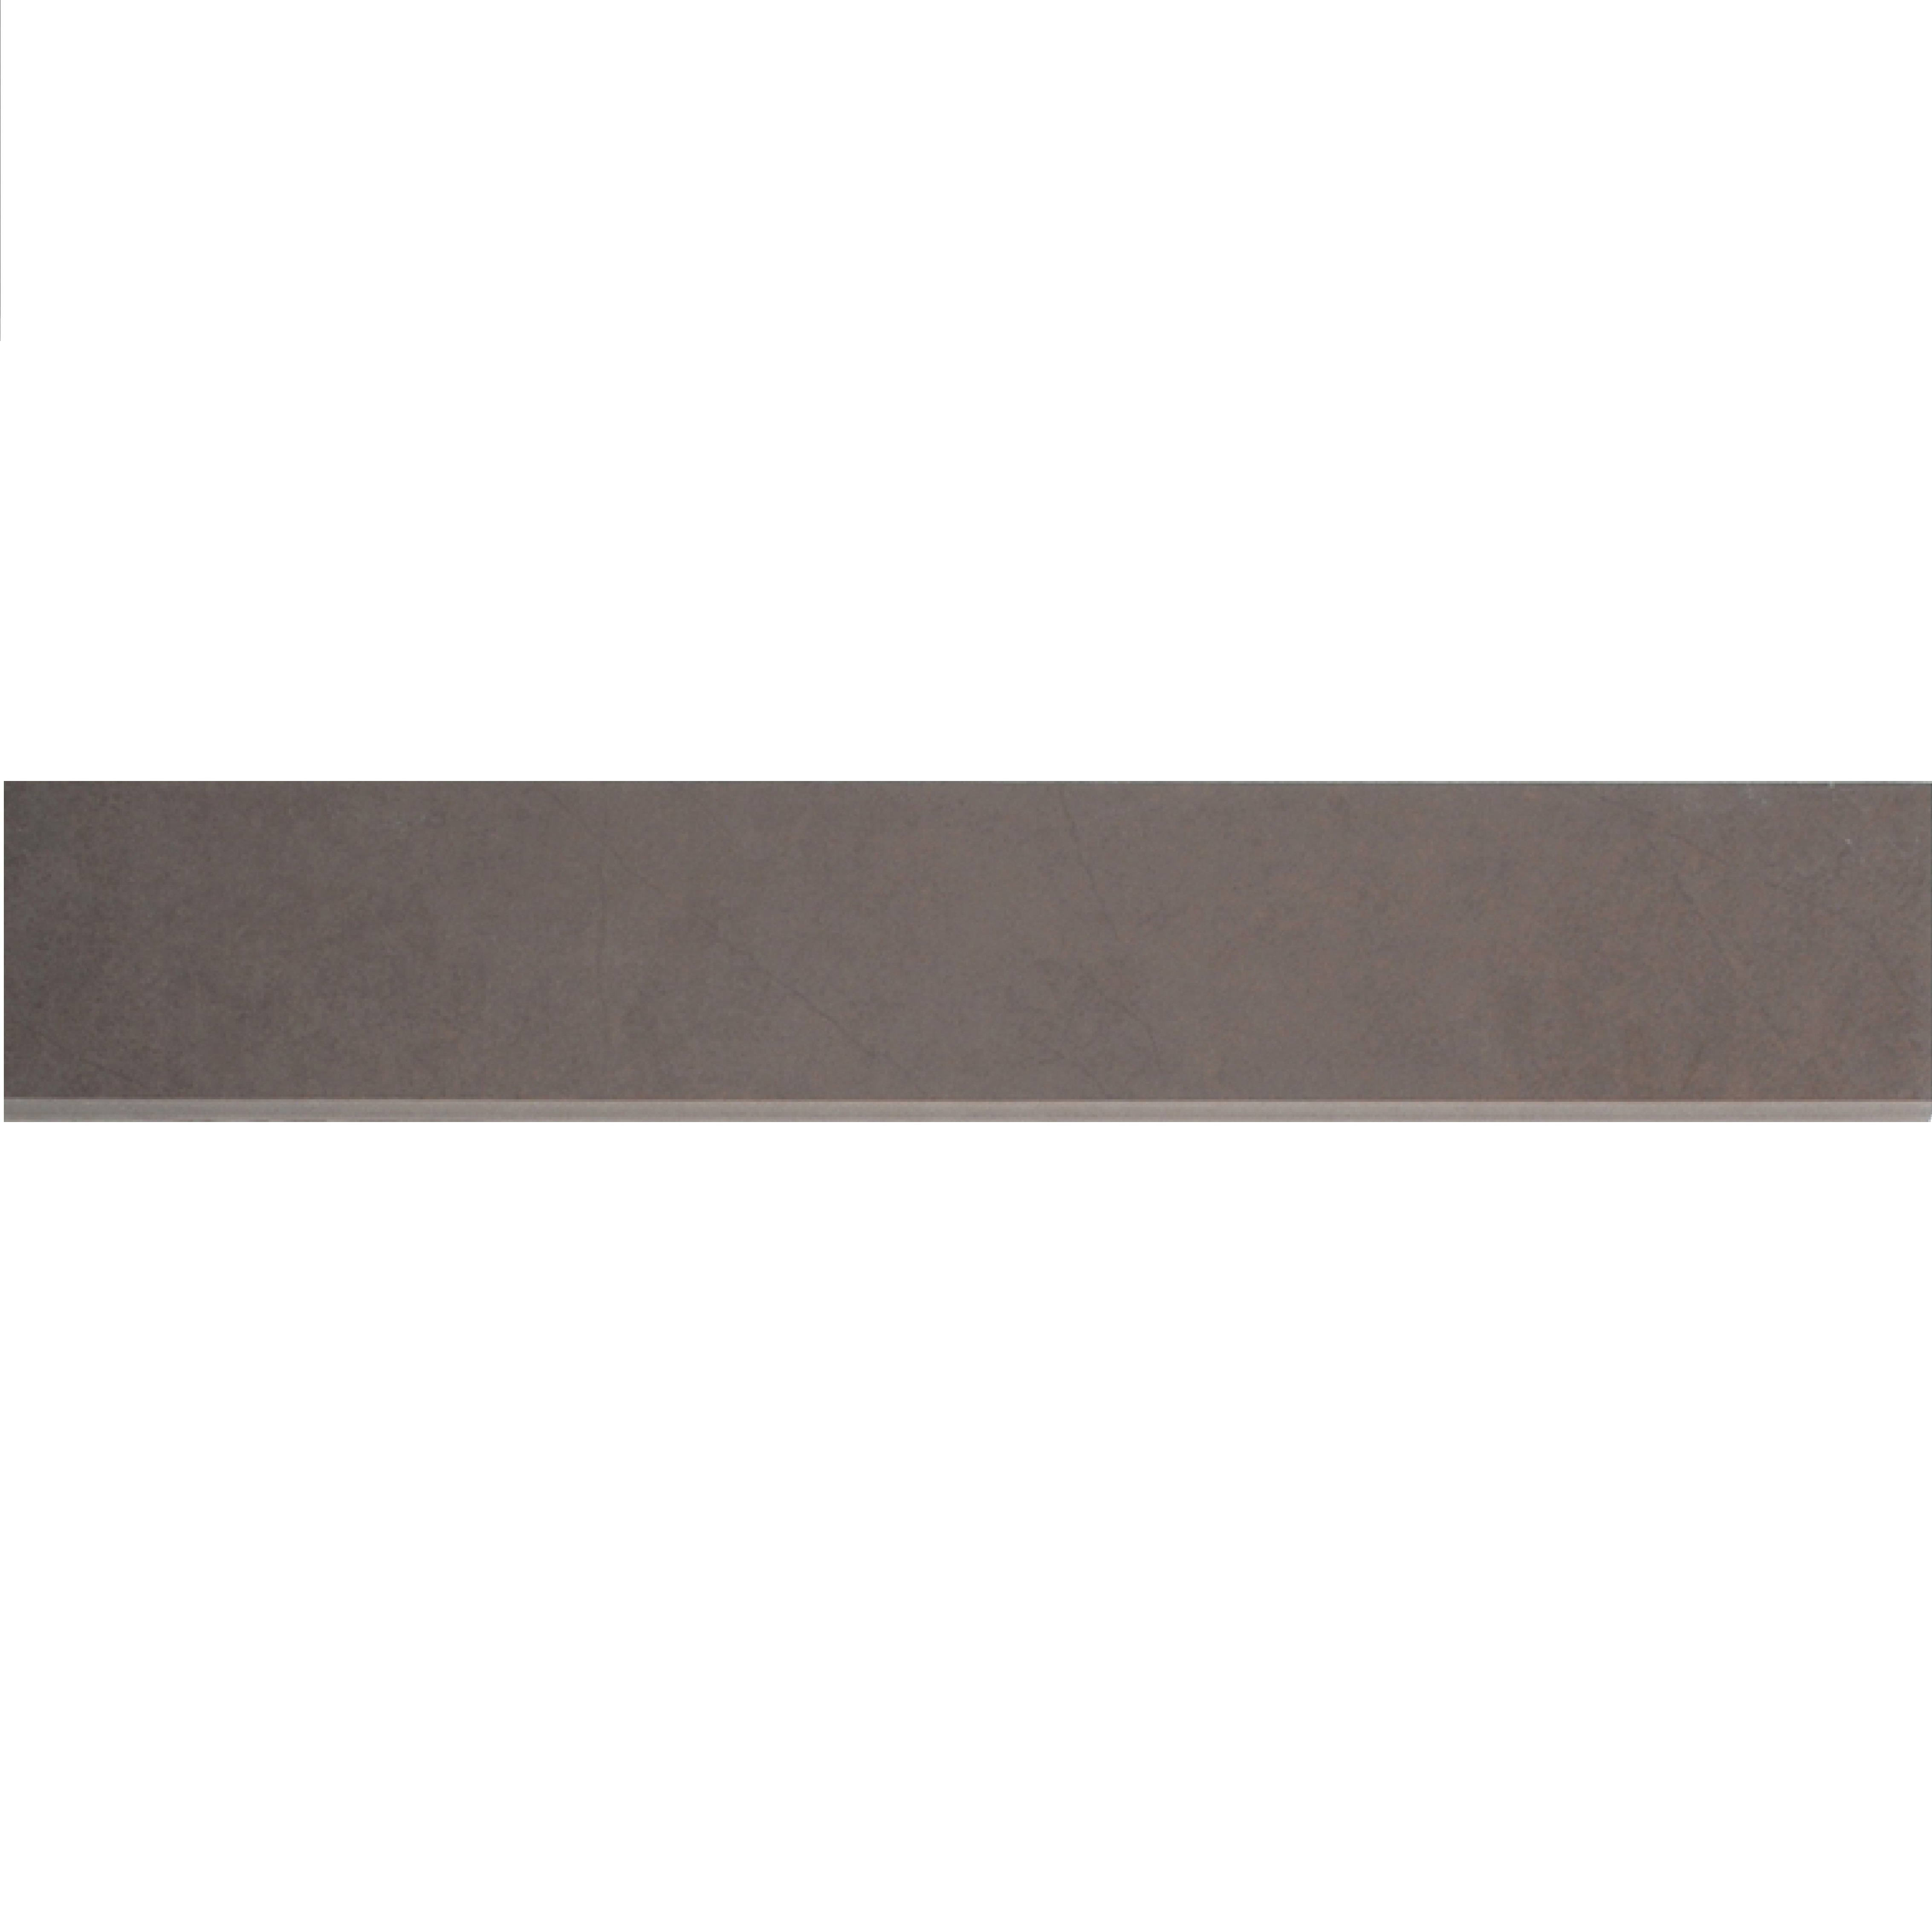 Arredo Klinker Quartz Brown 100x600 mm Sockel